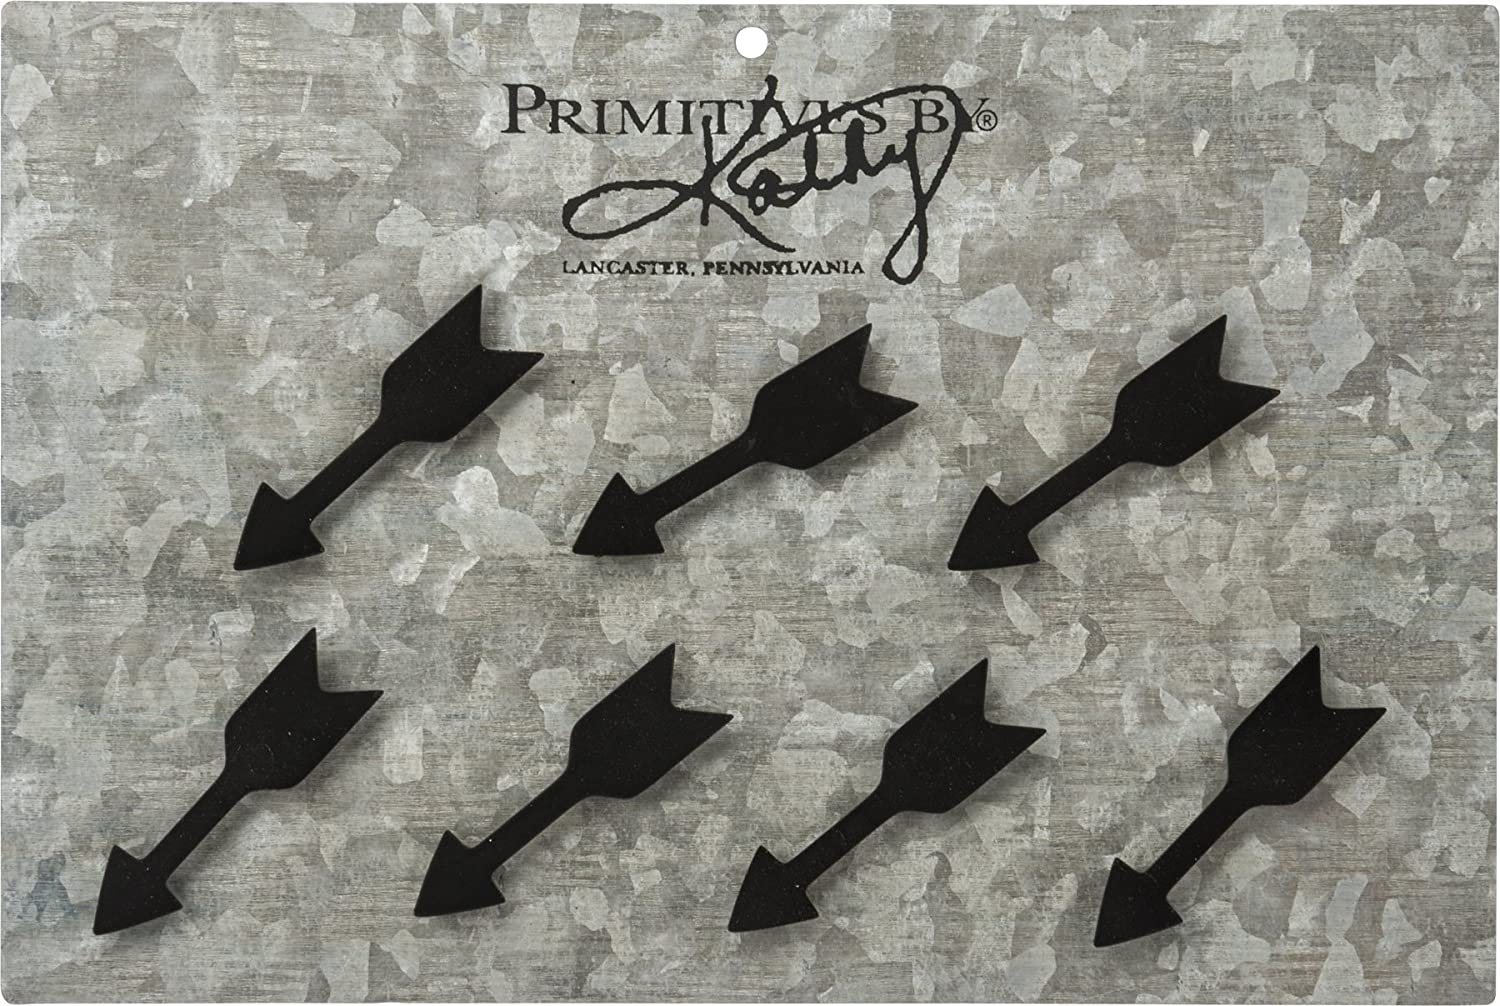 Primitives By Kathy Live Fully 1.75 Inches x 3.25 Inches Magnet Paper Wood Refrigerator Magnets